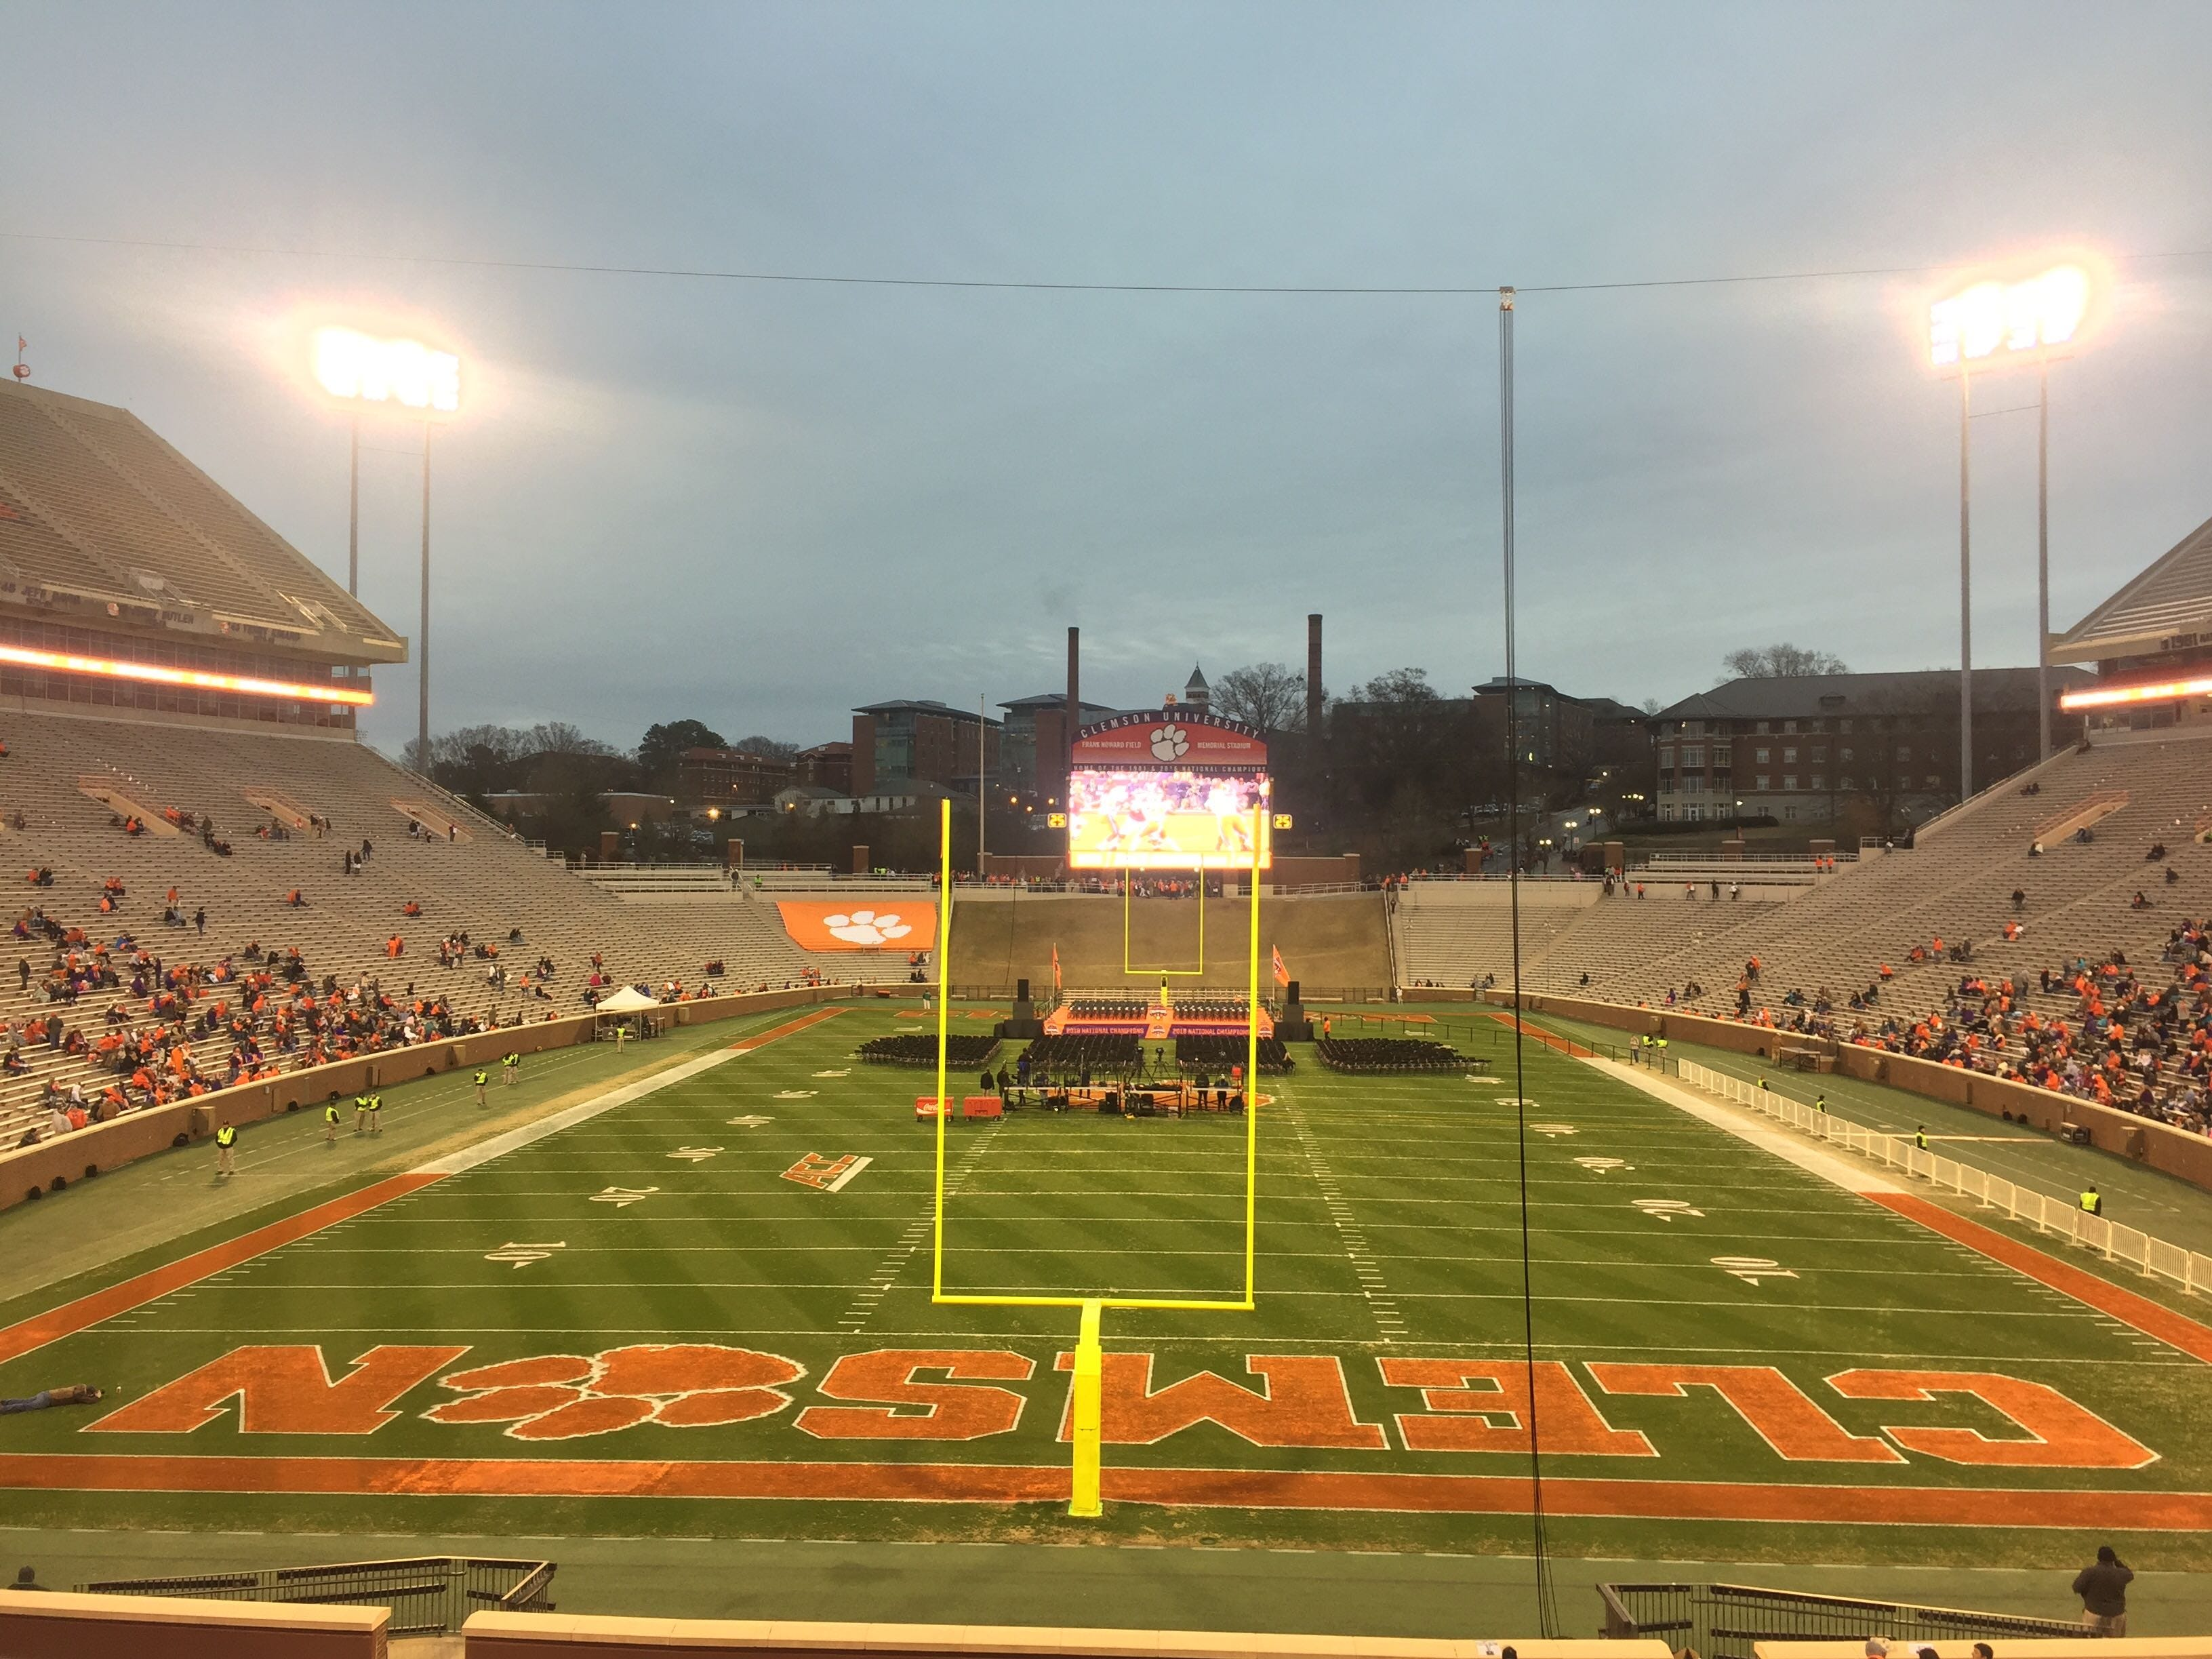 An early look at Clemson Memorial Stadium where some fans have gathered early to watch a replay of the National Championship game.